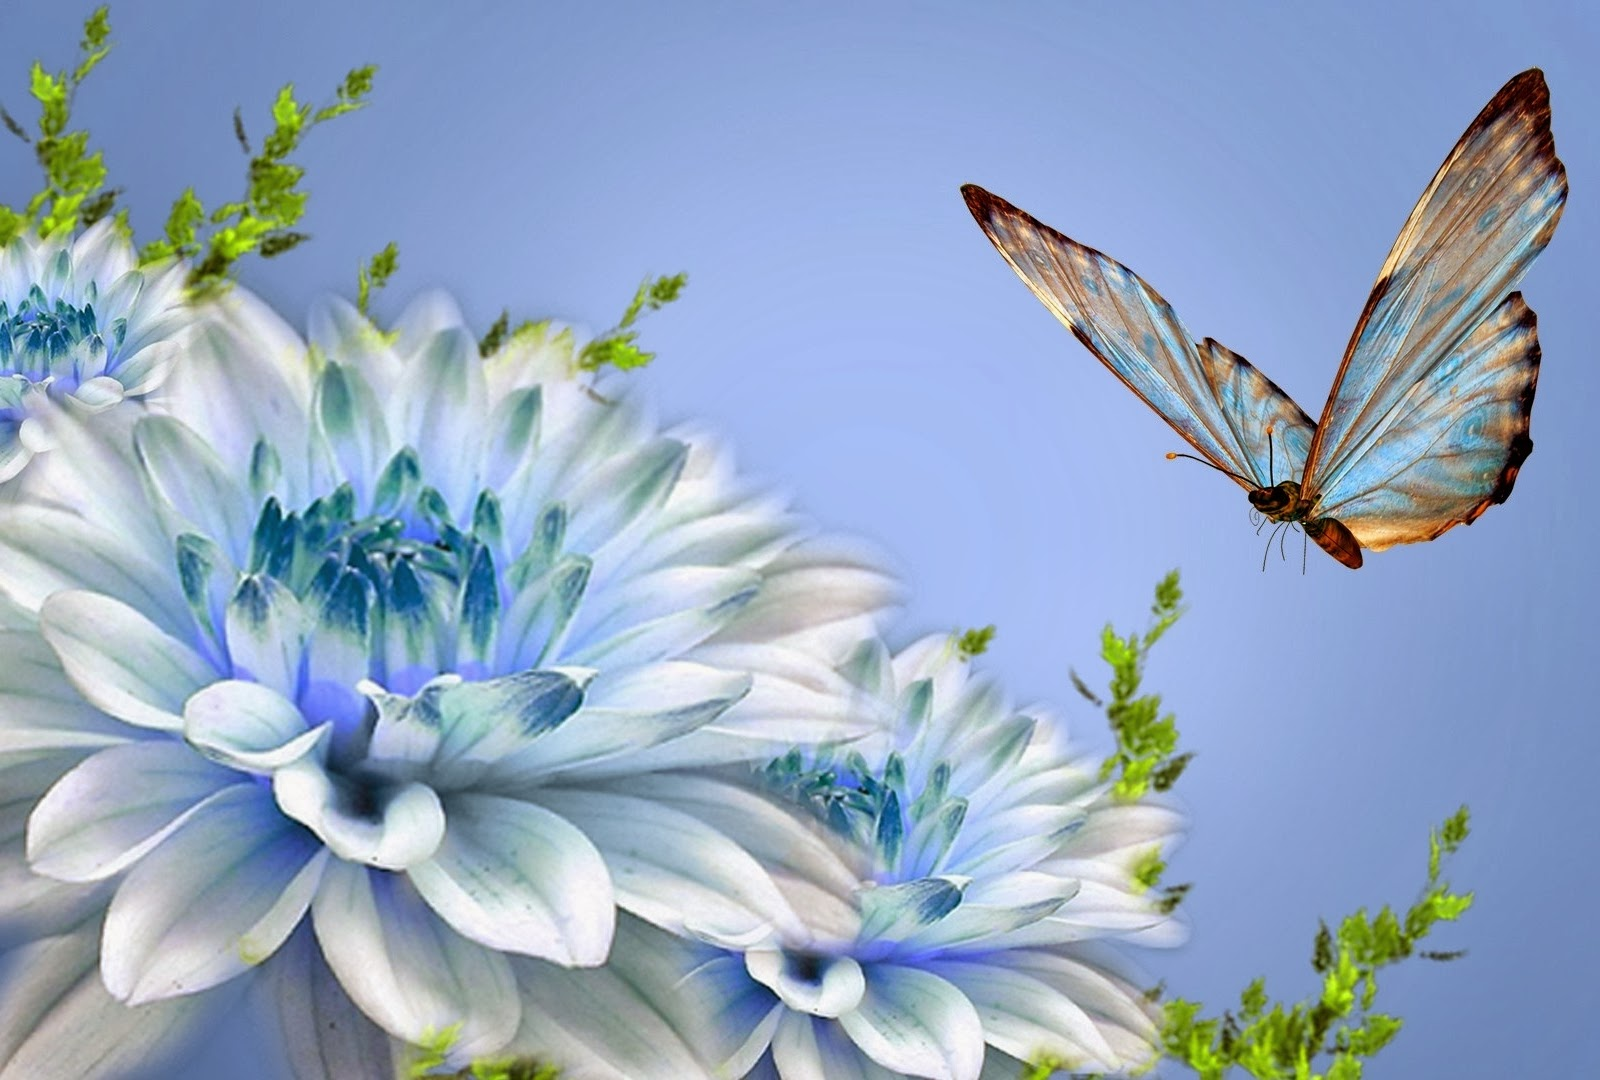 HD Wallpapers 1080p Nature Love Mobile 1600x1080